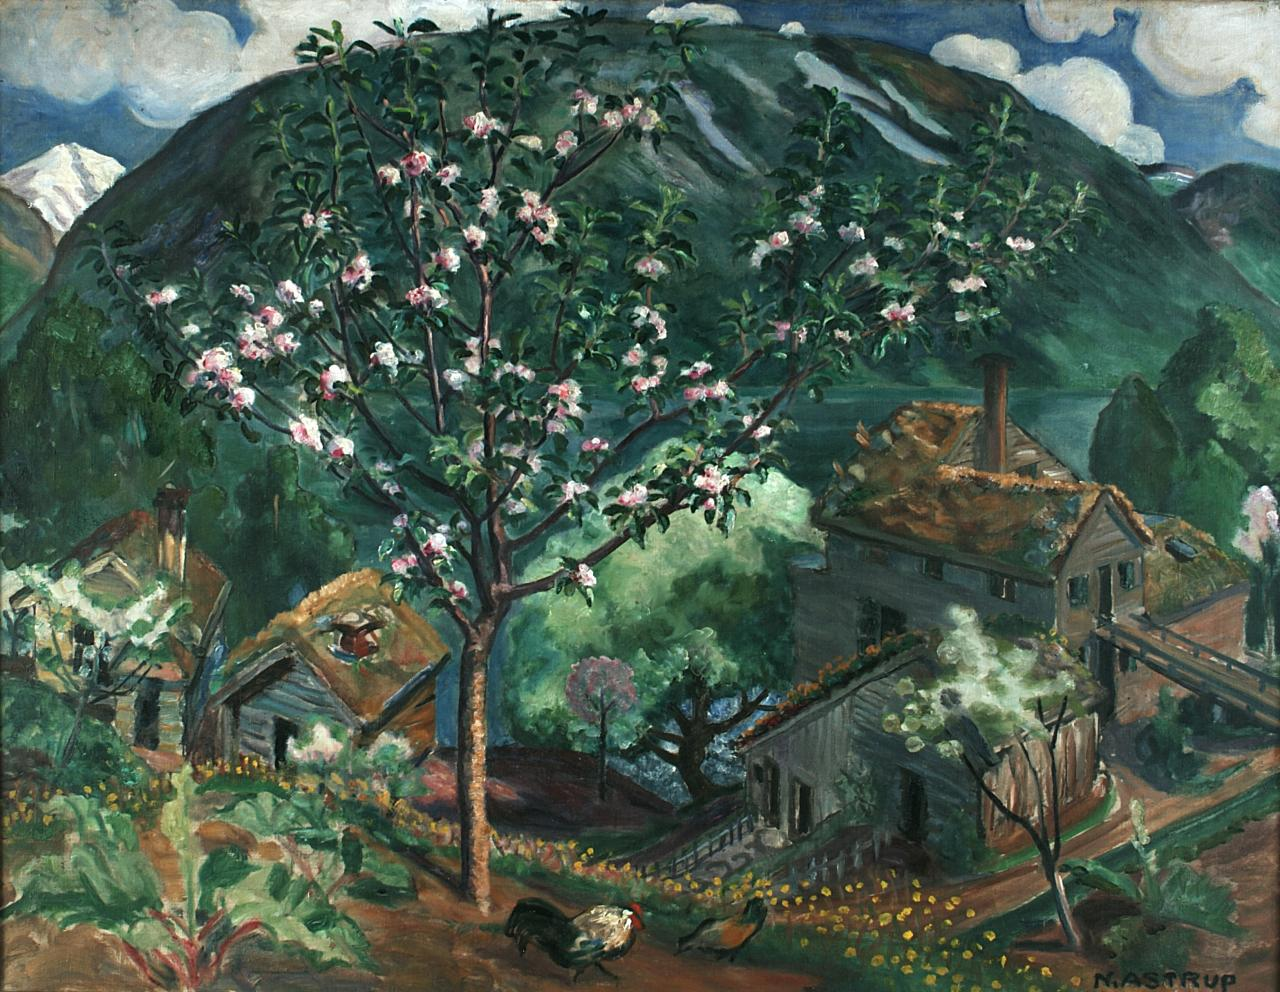 Here is Astrup's painted version of Astruptunet in his painting 'Apple Tree in Bloom.' Image: Courtesy of Nikolai-Astrup.no. Unauthorized use is prohibited.